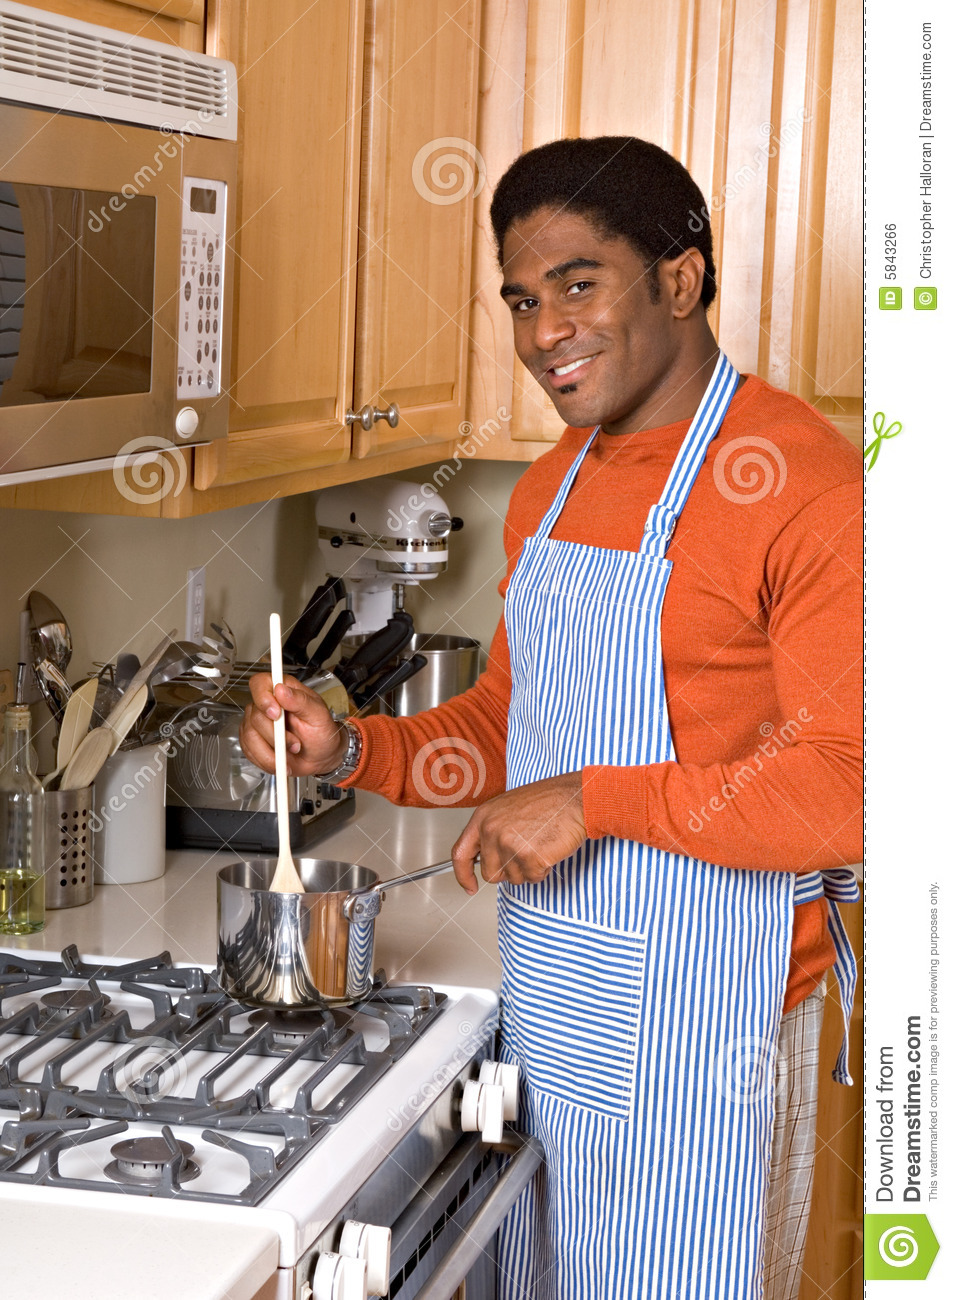 Handsome African-American man cooks in kitchen